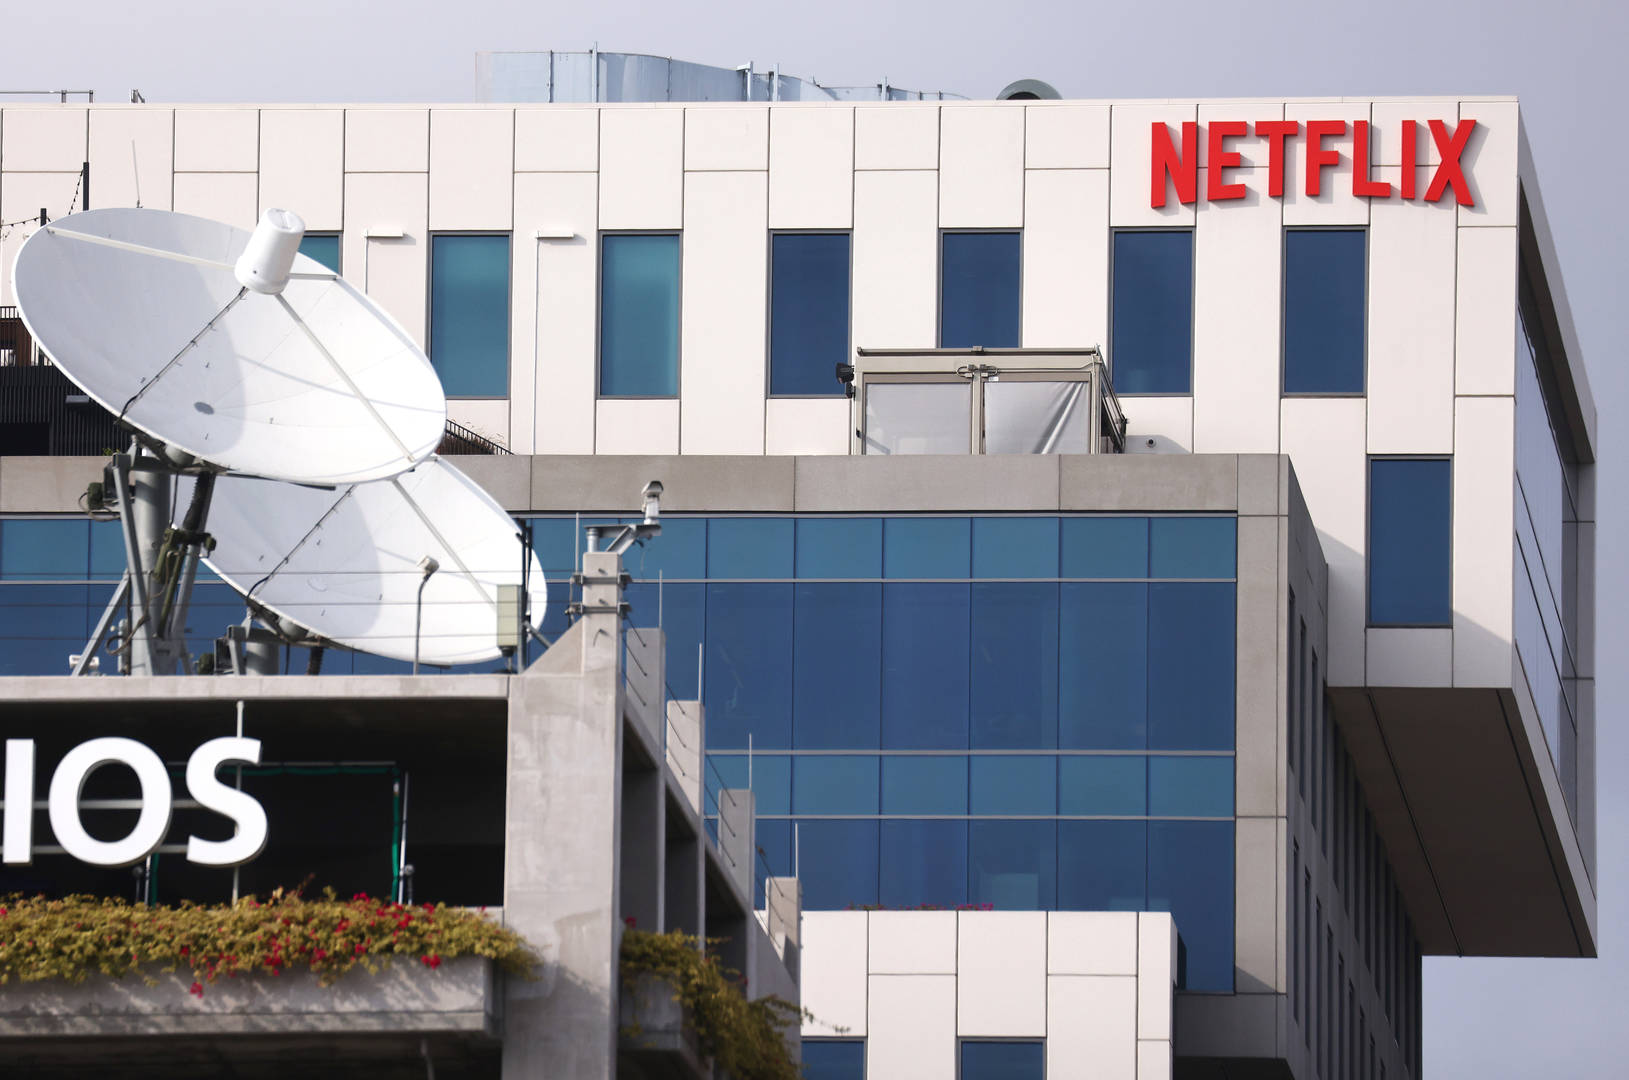 The Netflix logo is displayed at Netflix's Los Angeles headquarters (TOP) on October 07, 2021 in Los Angeles, California. The IATSE union which represents Hollywood's film and television production crews voted to authorize a strike, calling for better working conditions and higher pay amid a surge in streaming demand. Negotiations are ongoing but a strike may be imminent.